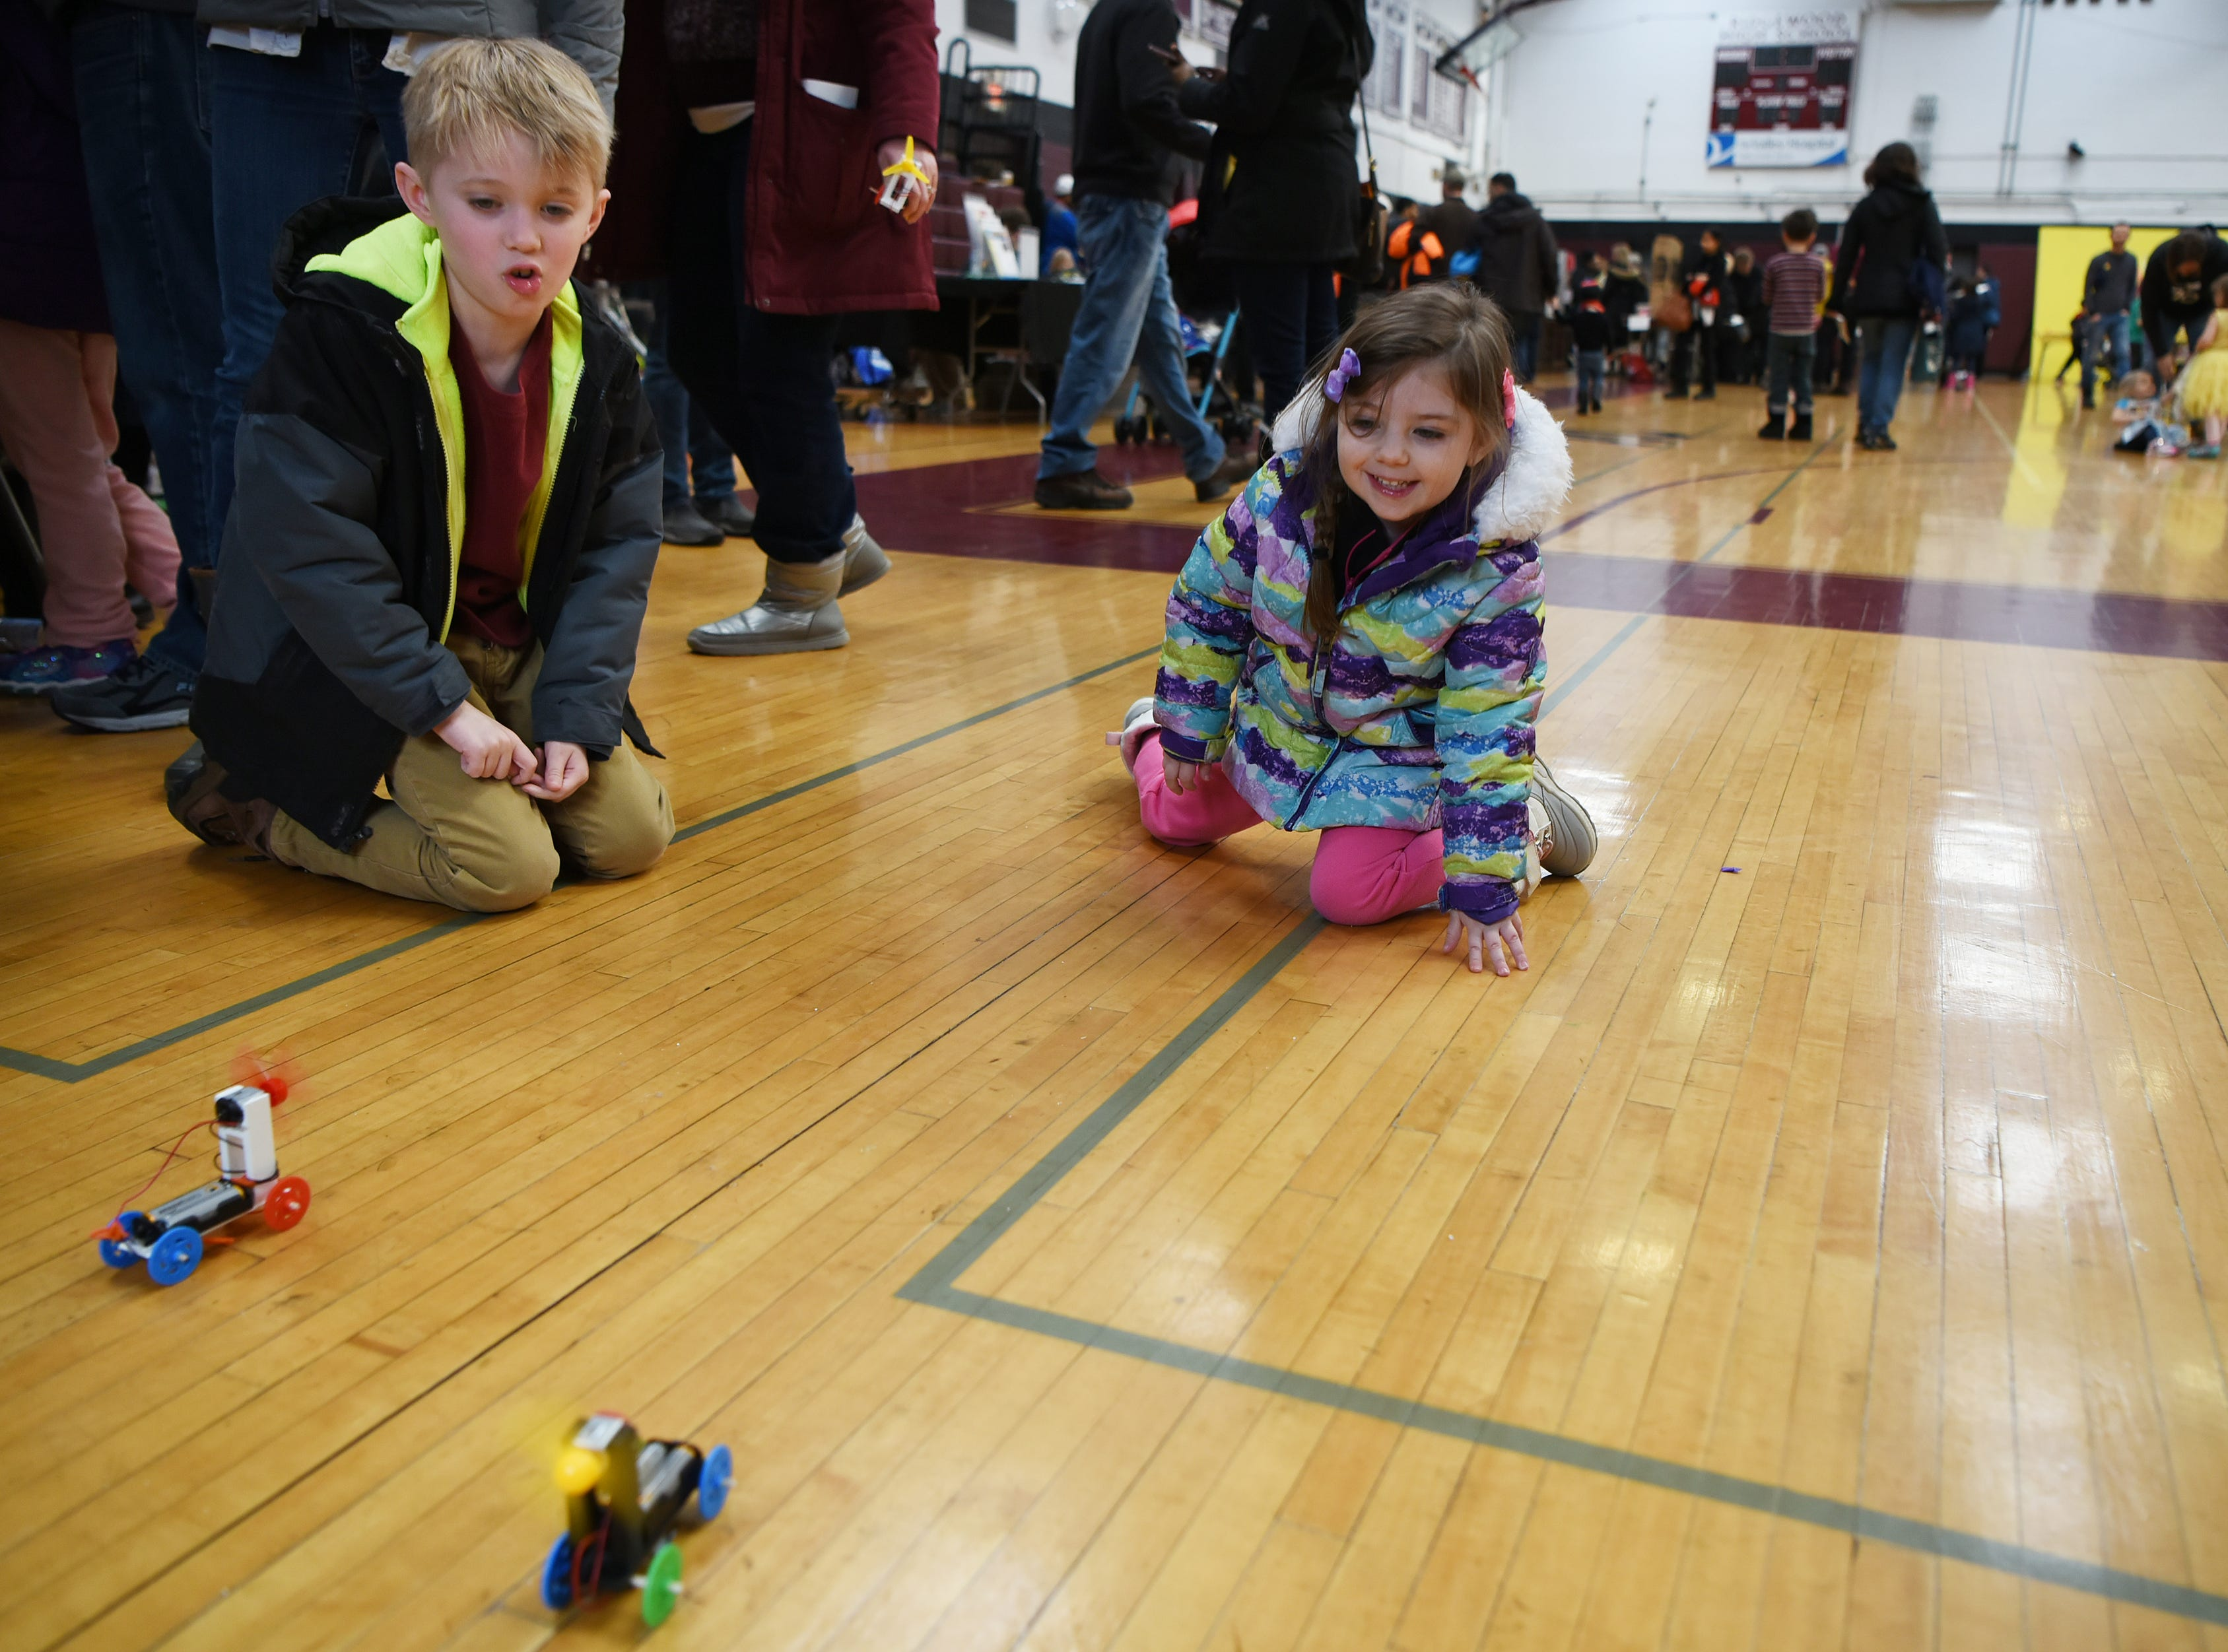 Tad Truhn, 8 and Chloe Truhn, 3 race the wind-powered electric cars they made at Super Science Saturday held at Ridgewood High School in Ridgewood on Saturday March 2, 2019.